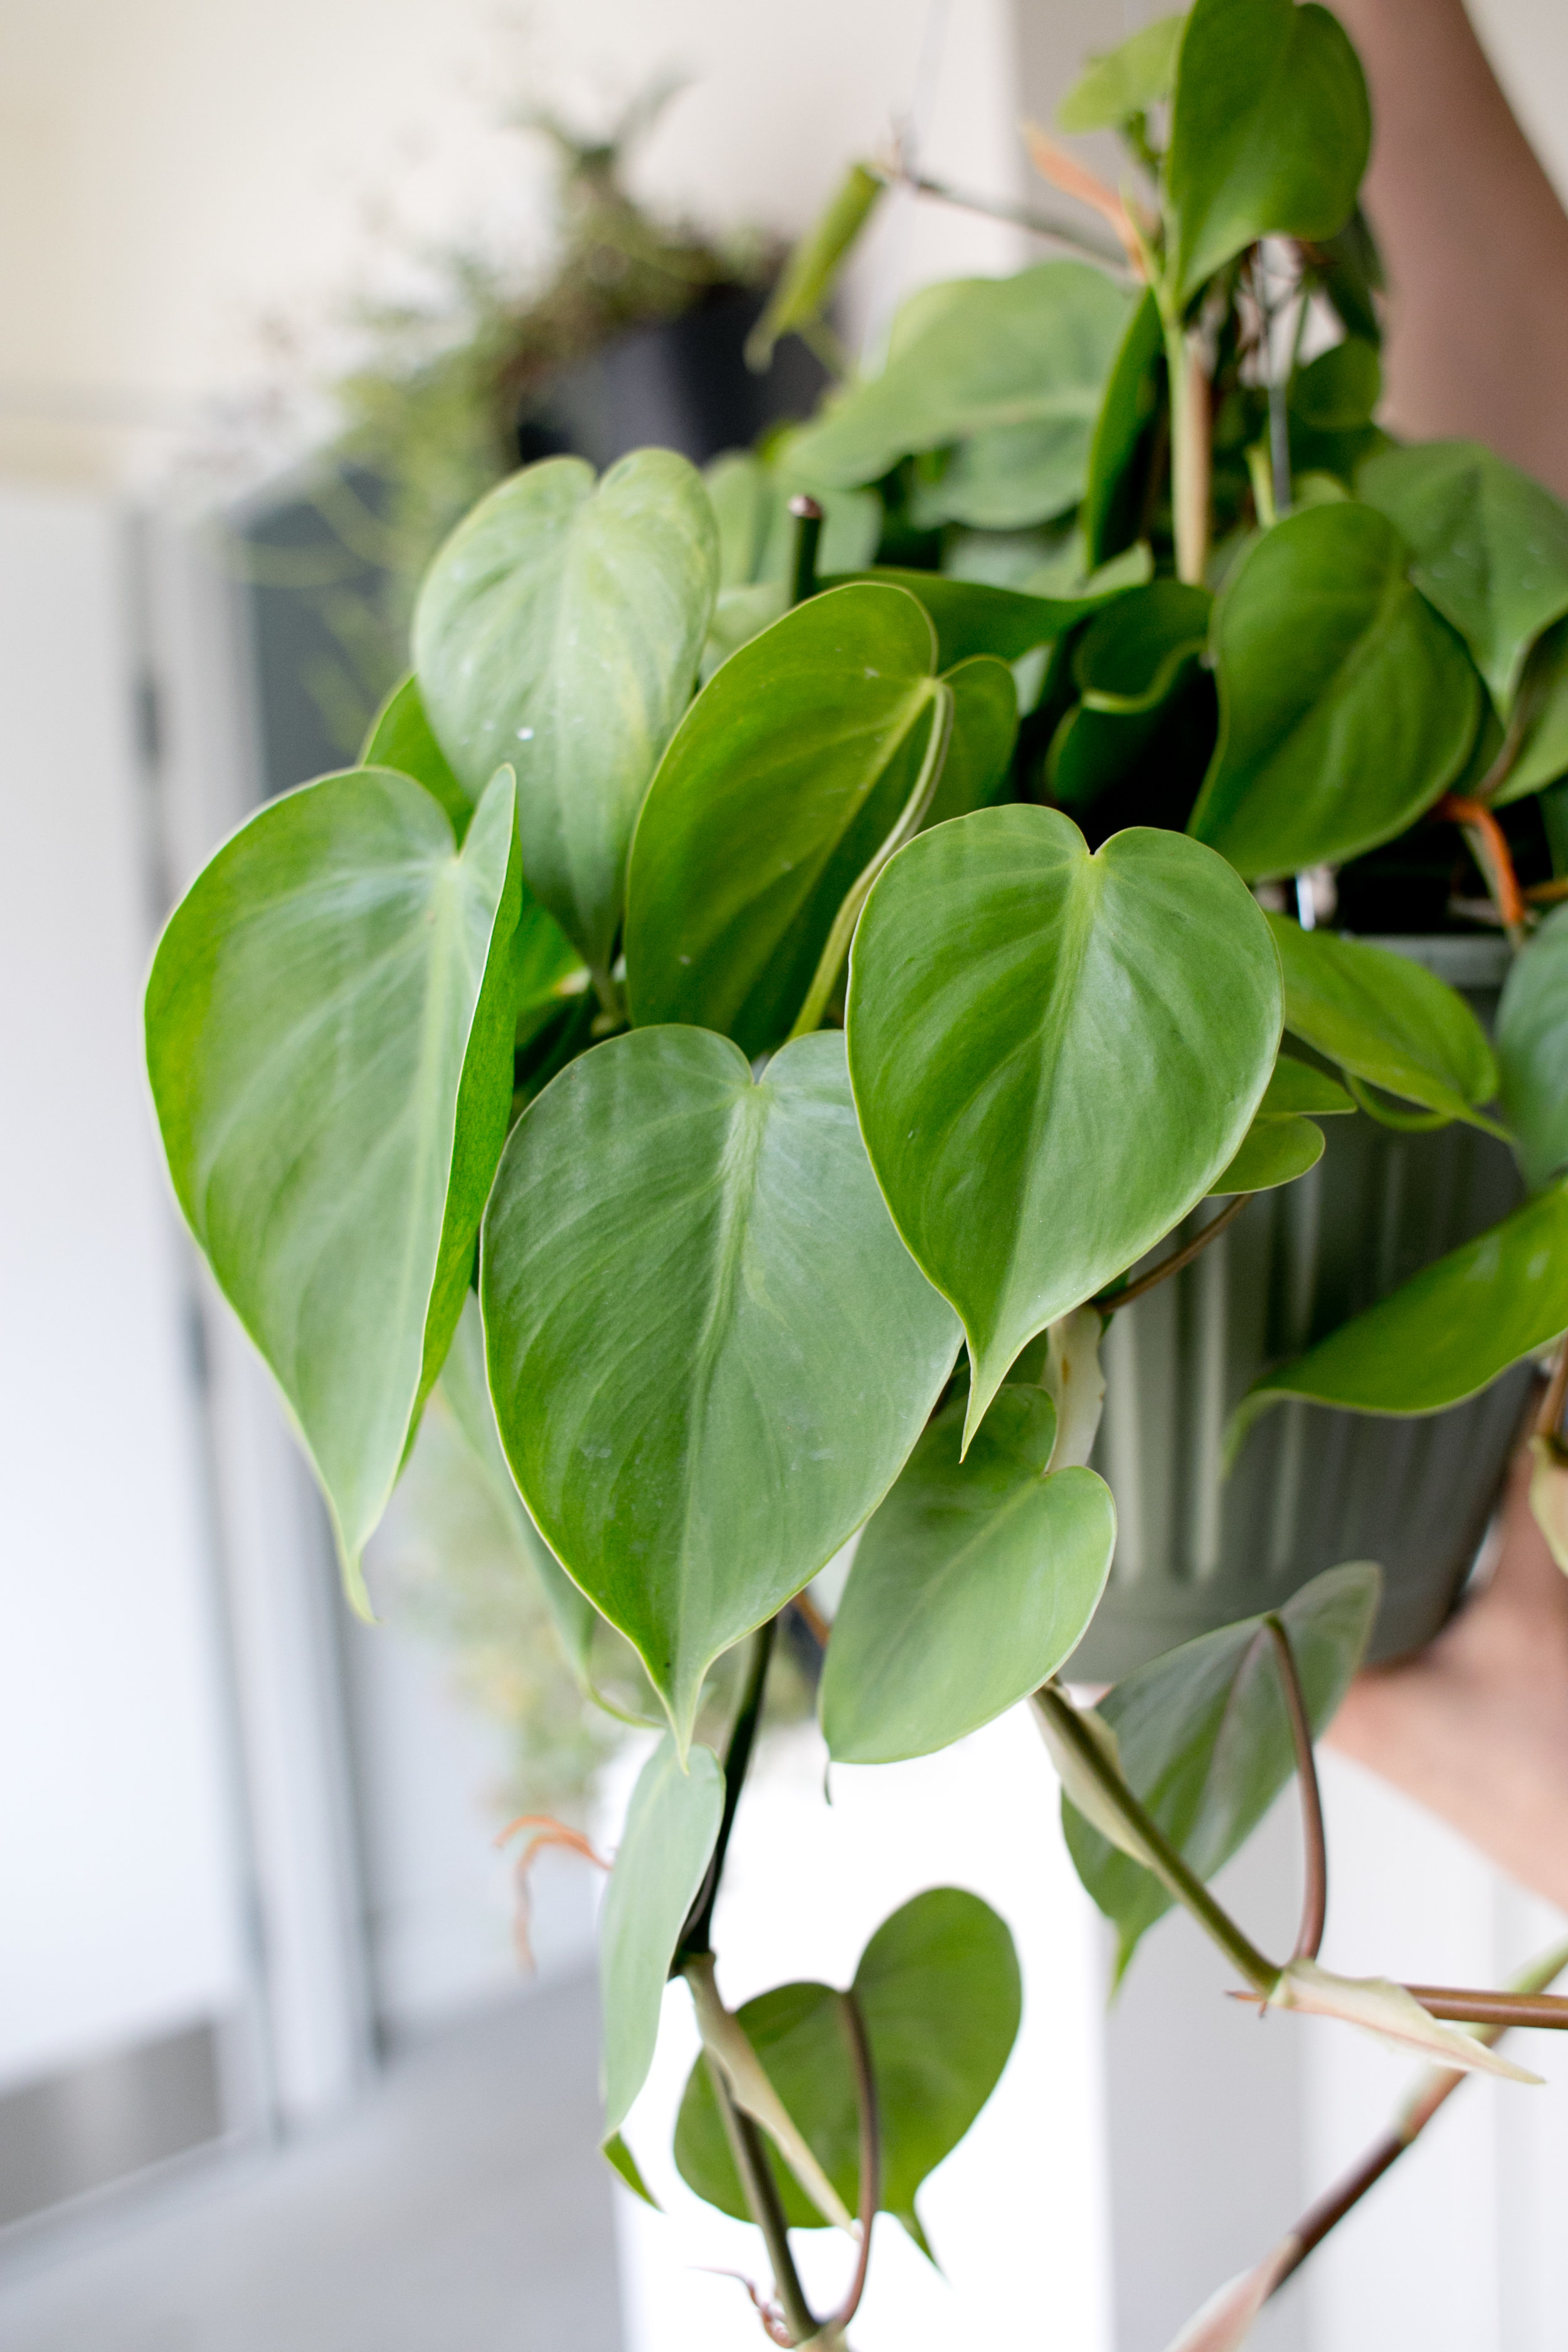 As a houseplant, Heartleaf Philodendrons can be grown up on a stake or trailing.